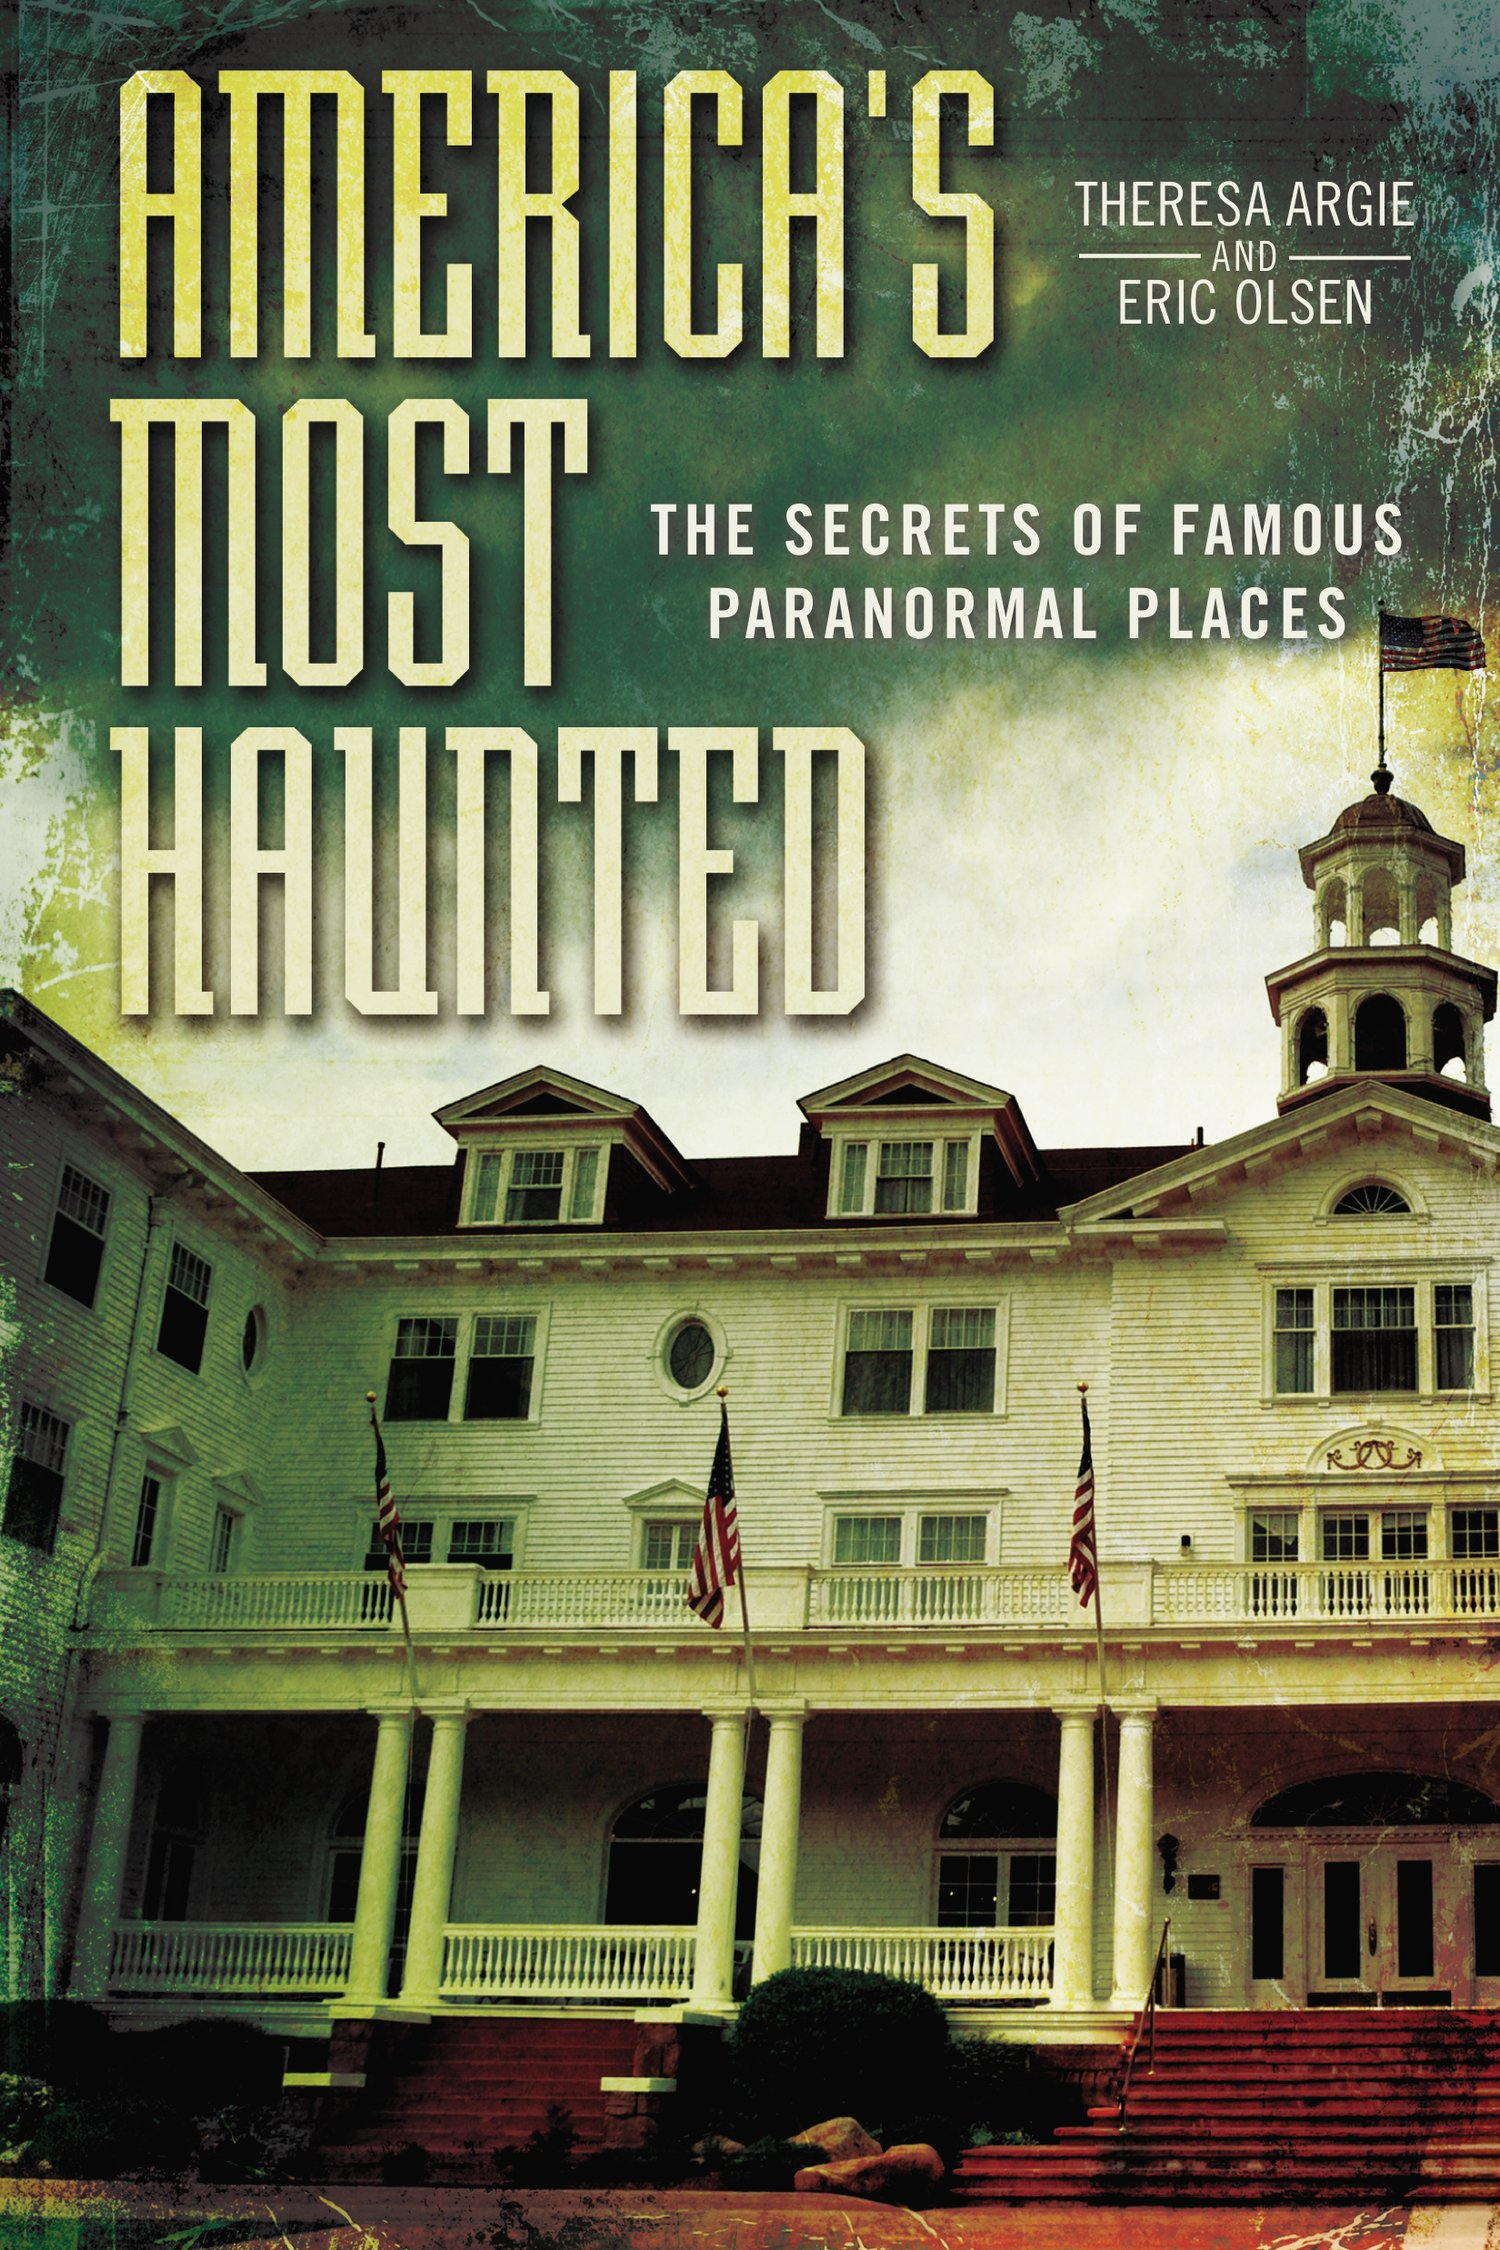 Amazon.com: America's Most Haunted: The Secrets of Famous Paranormal Places (9780425270141): Eric Olsen, Theresa Argie: Books